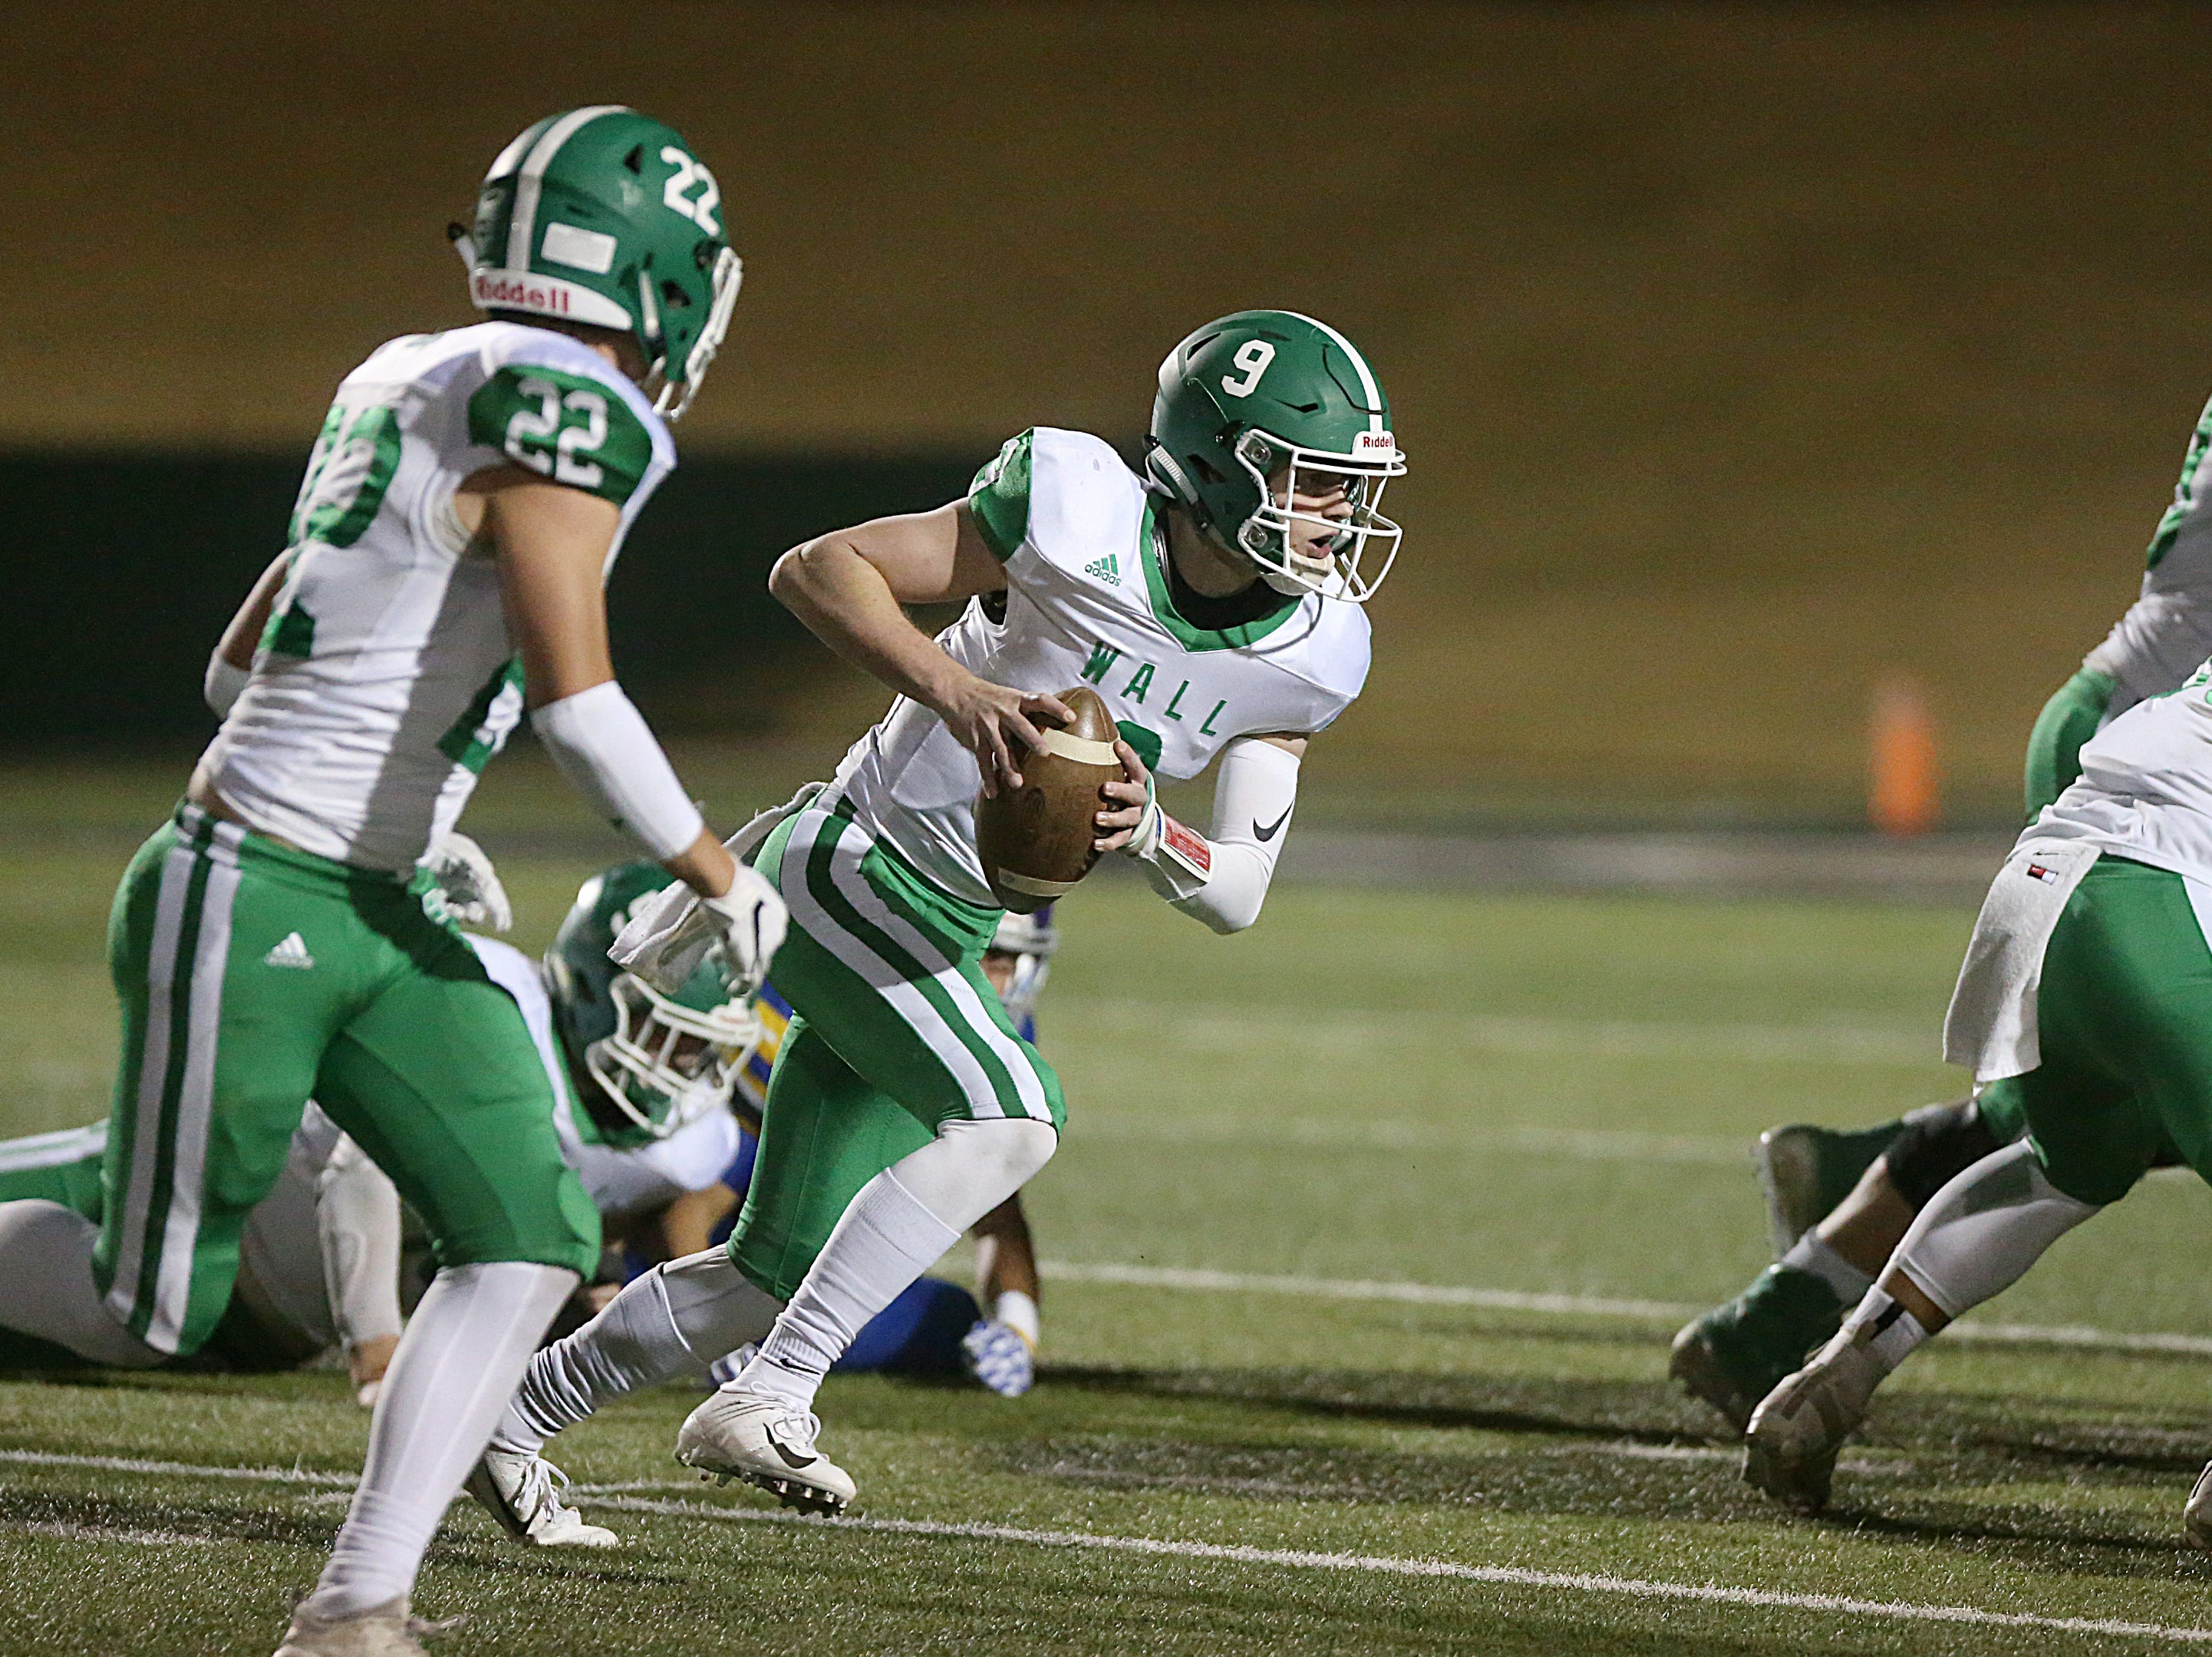 Wall's Mason Fuchs (#9) makes a play downfield Friday, Nov. 30, 2018, during their game against the Brock Eagle at Shotwell Stadium in Abilene. Wall lost 13 to 35.